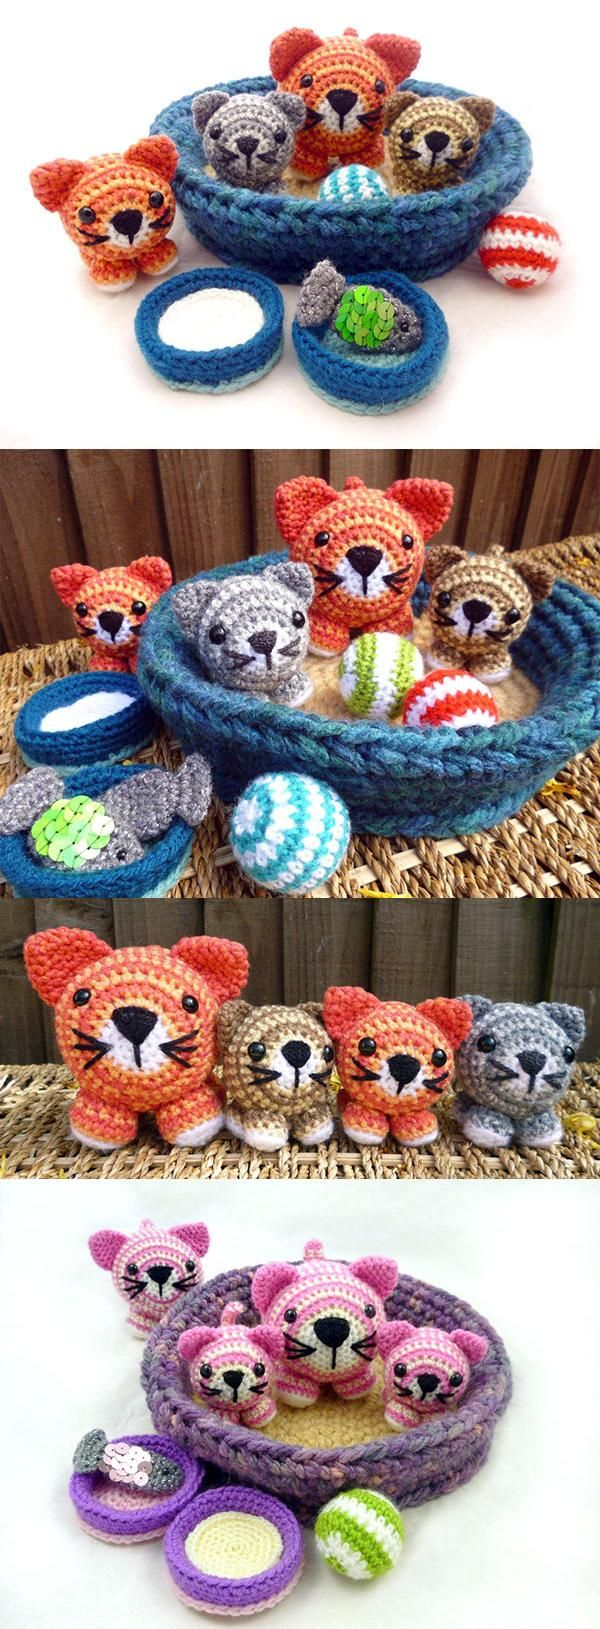 """Found at Amigurumipatterns.net                   This site has SO MANY MORE             --""""Anything not marked as 'premium' is FREE!""""--"""